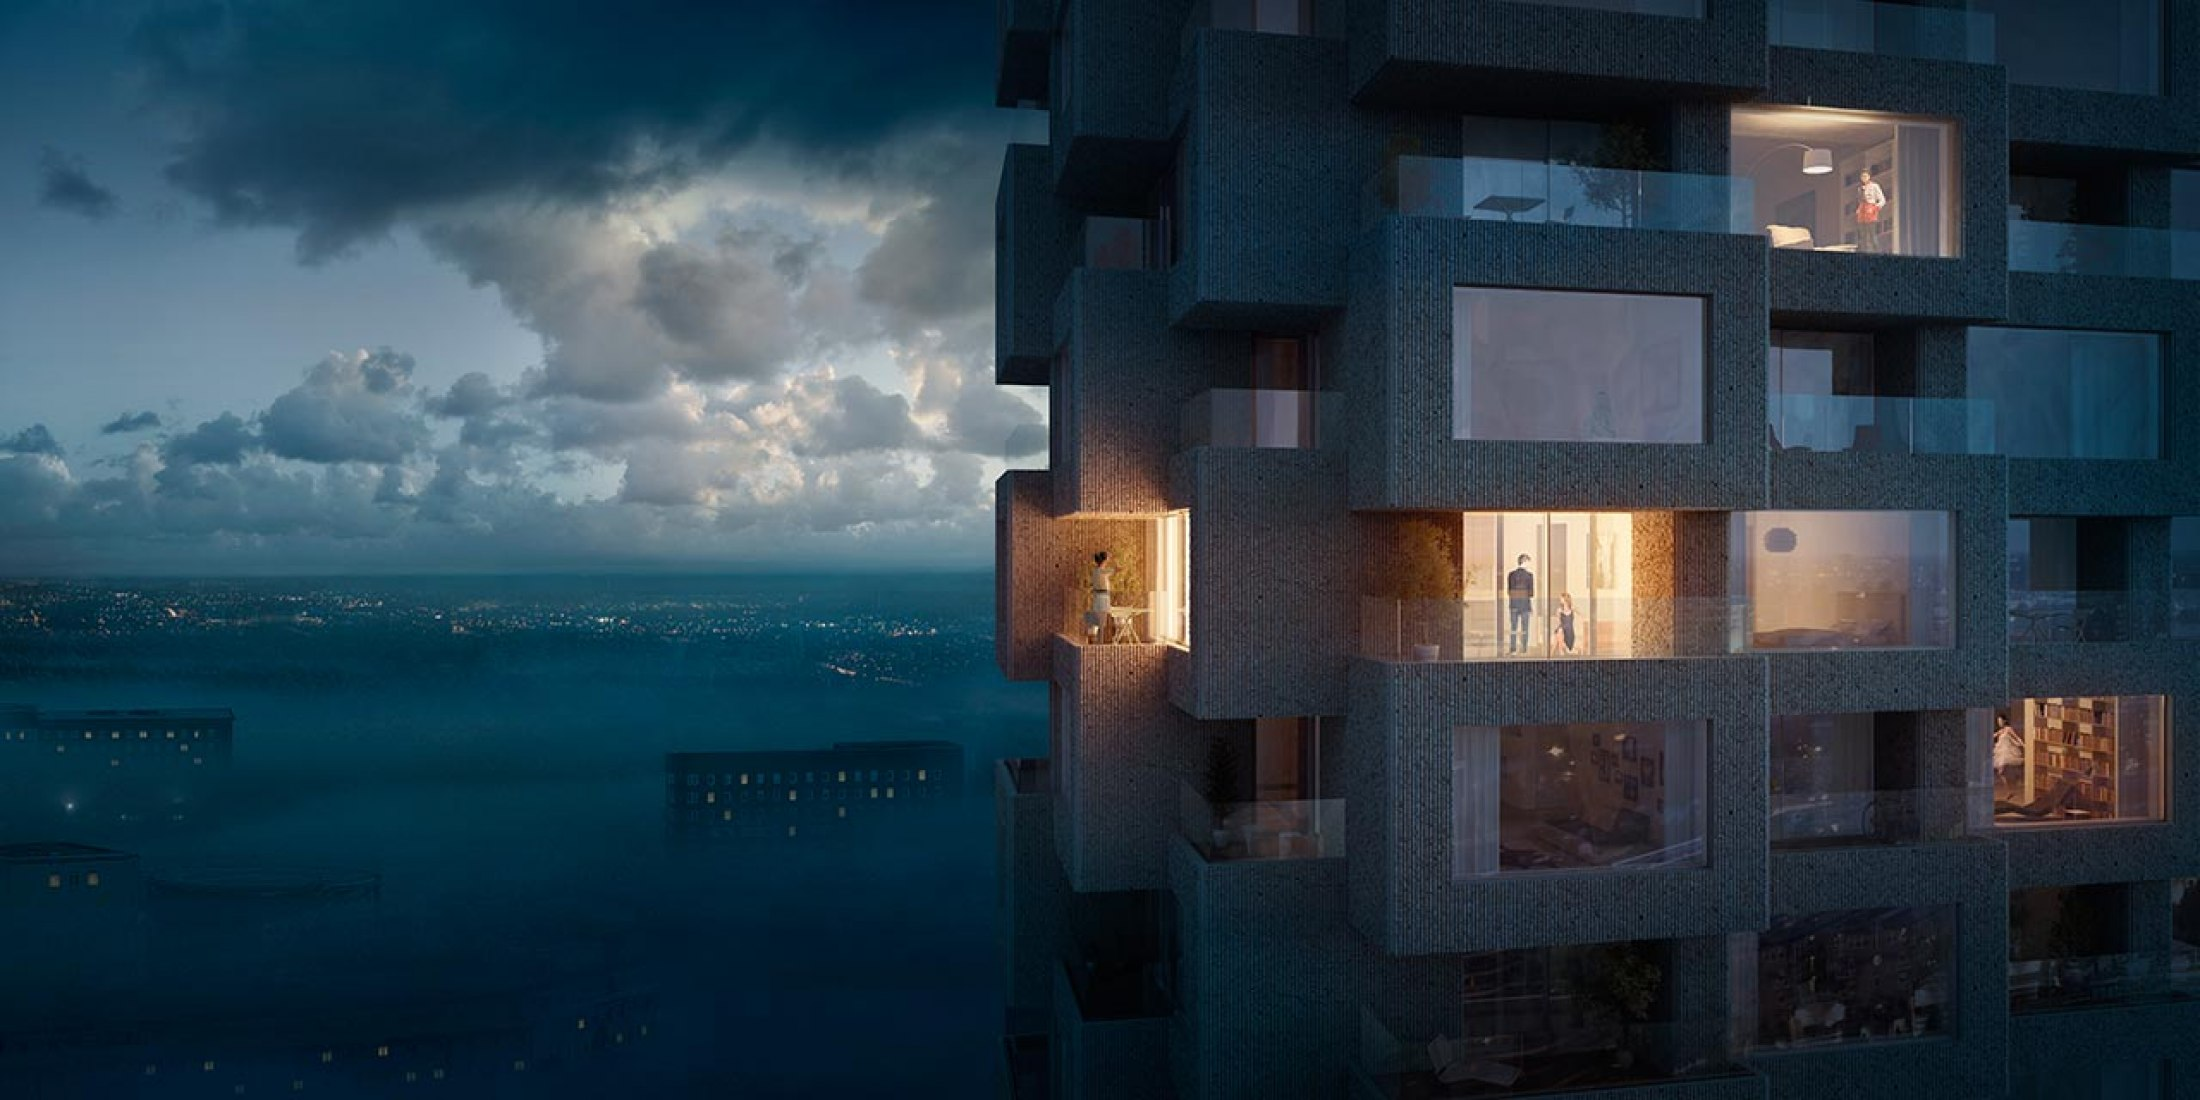 Night vision. NORRA TORNEN, housing buildings by OMA. Image courtesy OMA.